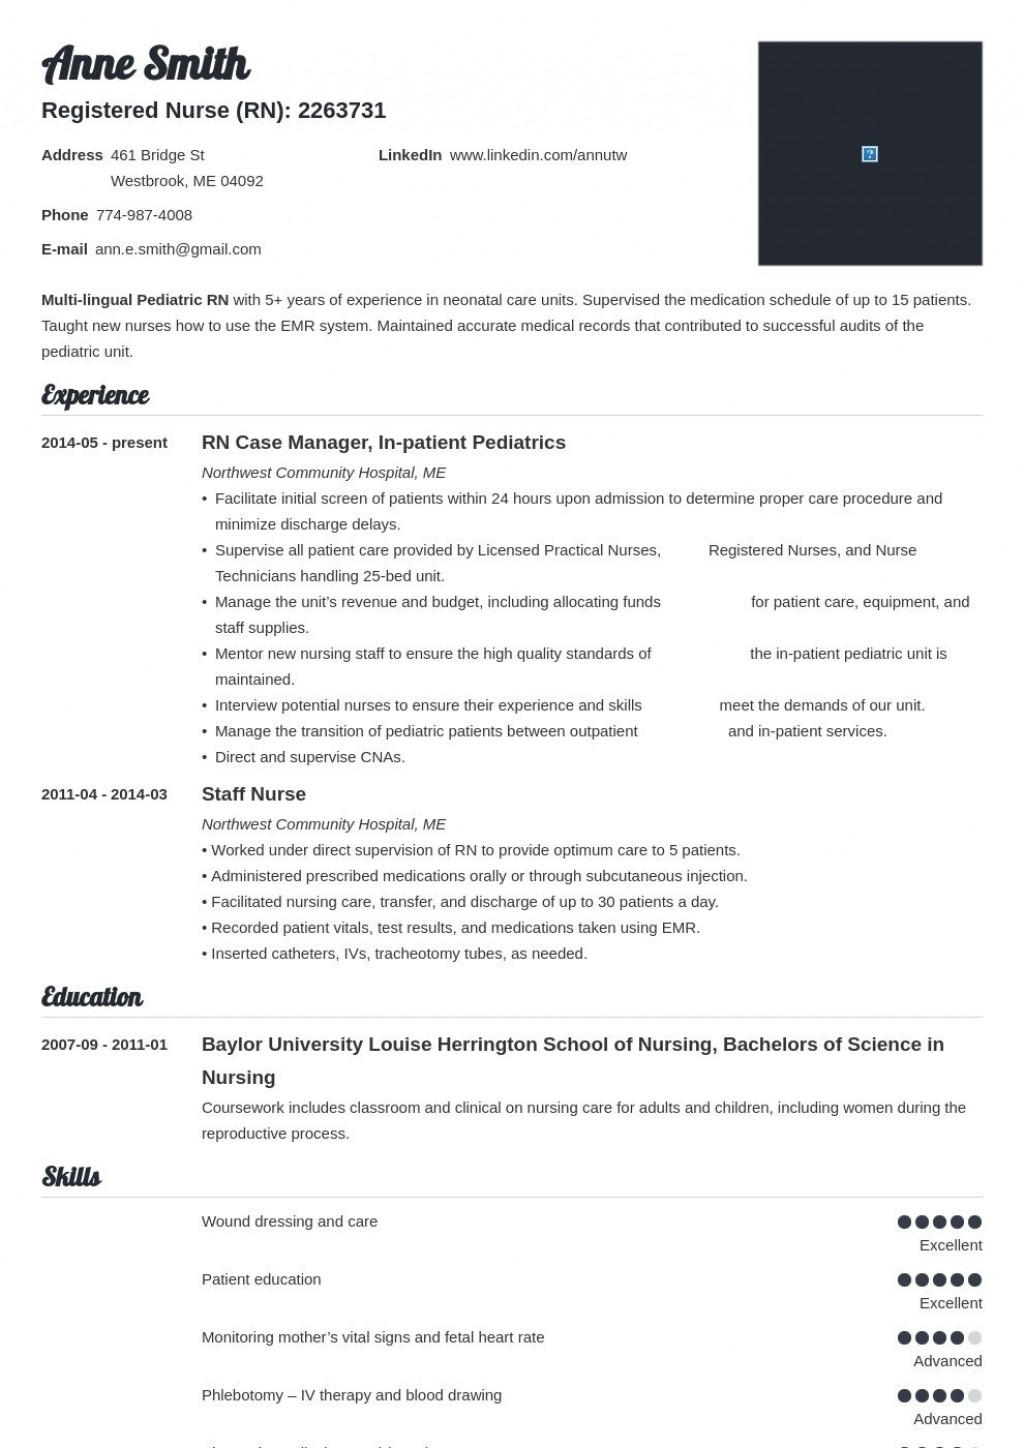 004 Striking Nurse Resume Template Free Design  Graduate RnLarge